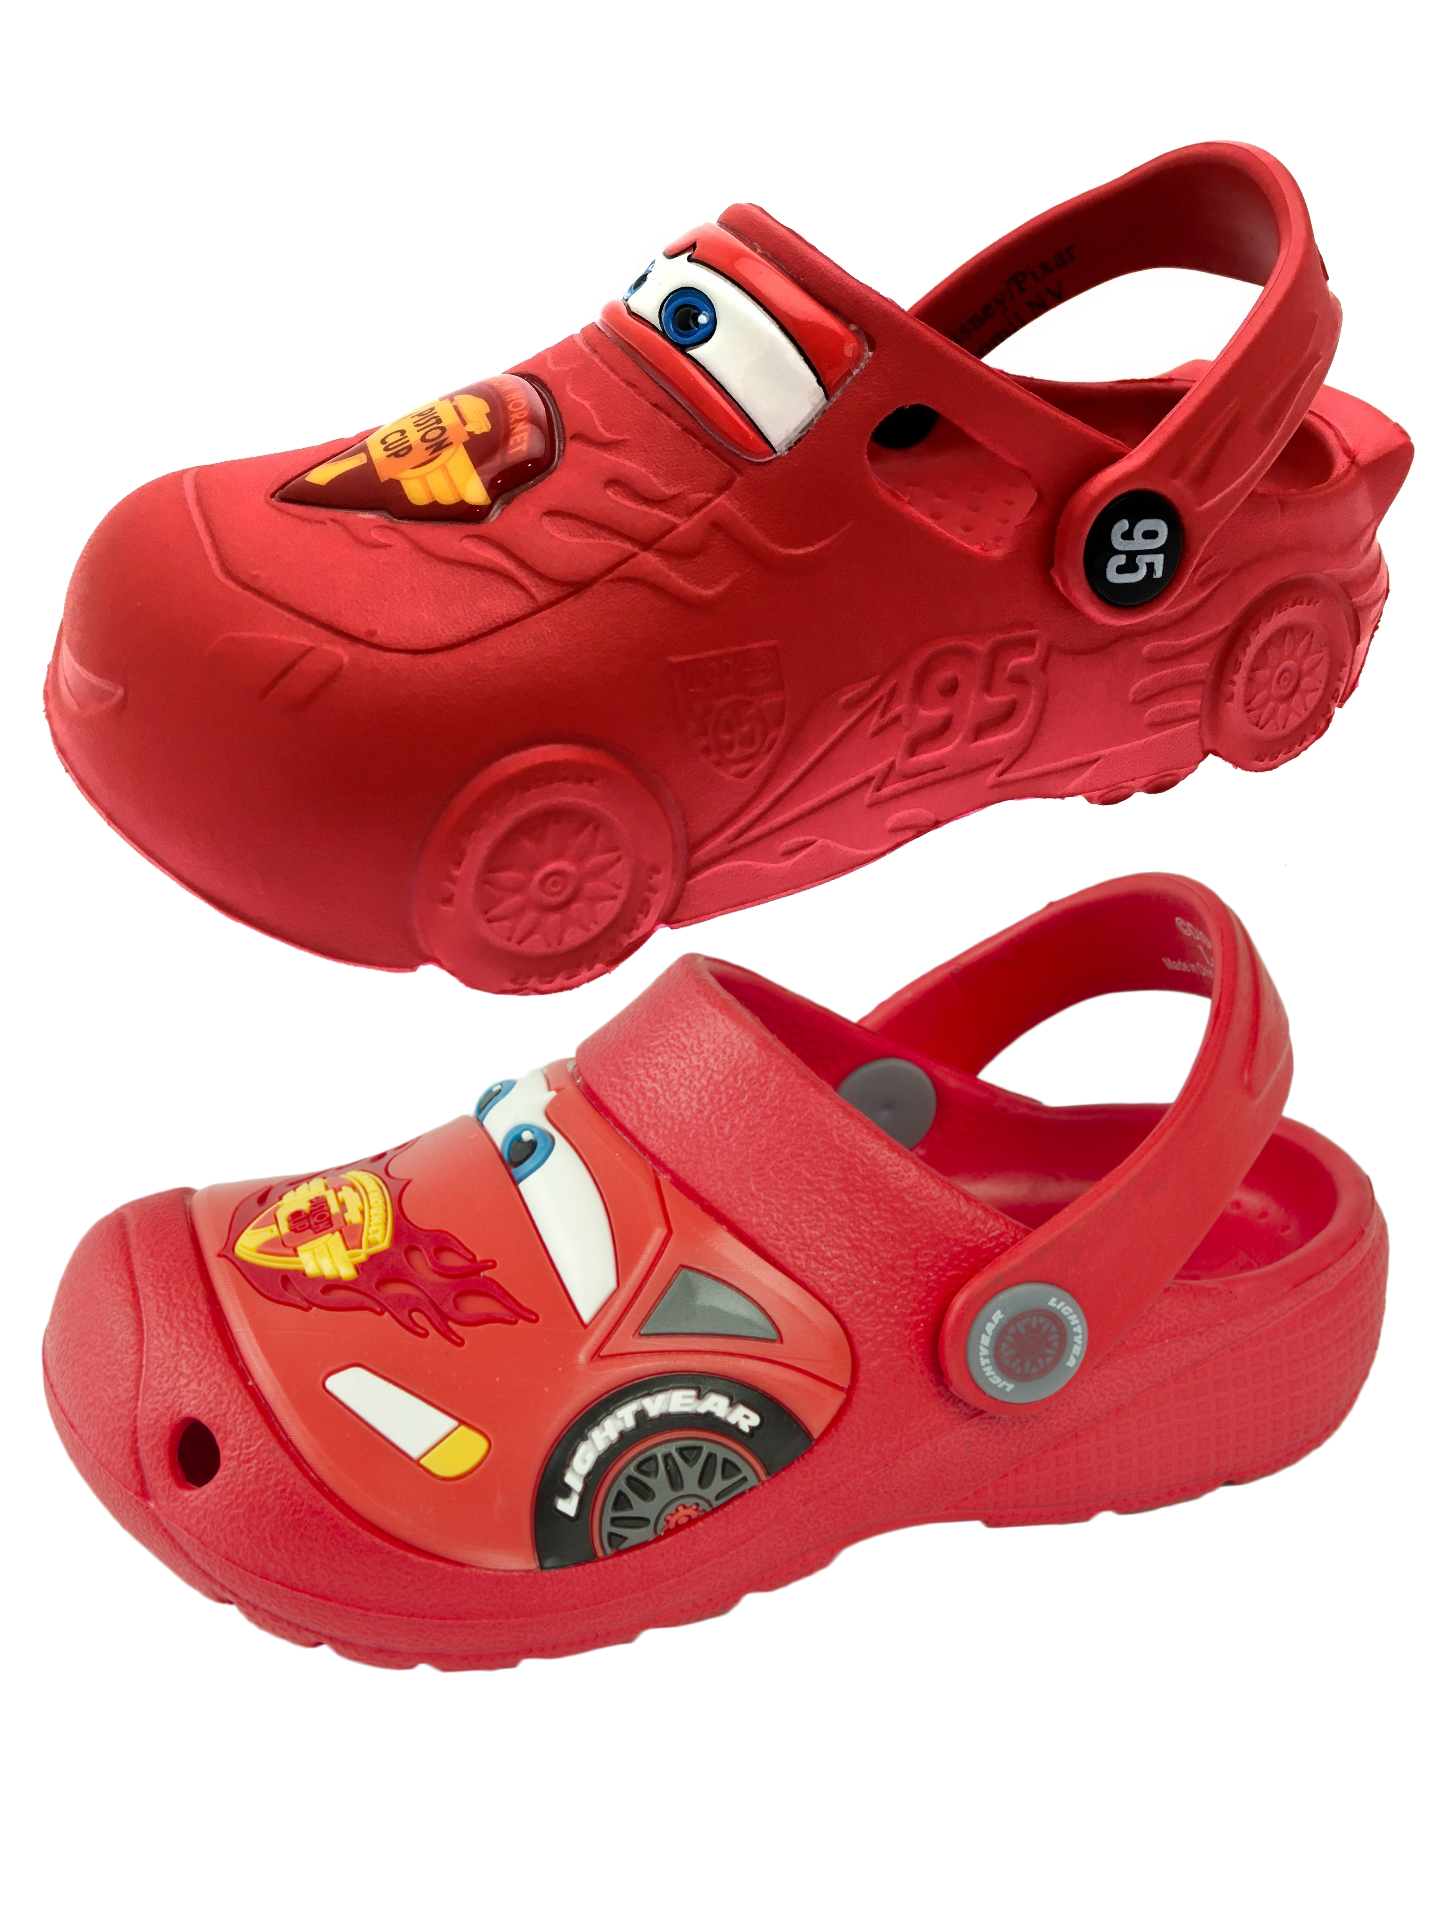 de26e2915399 Disney Cars Lightning McQueen 3D Clogs Beach Summer Sandals Boys Shoes Kids  Size